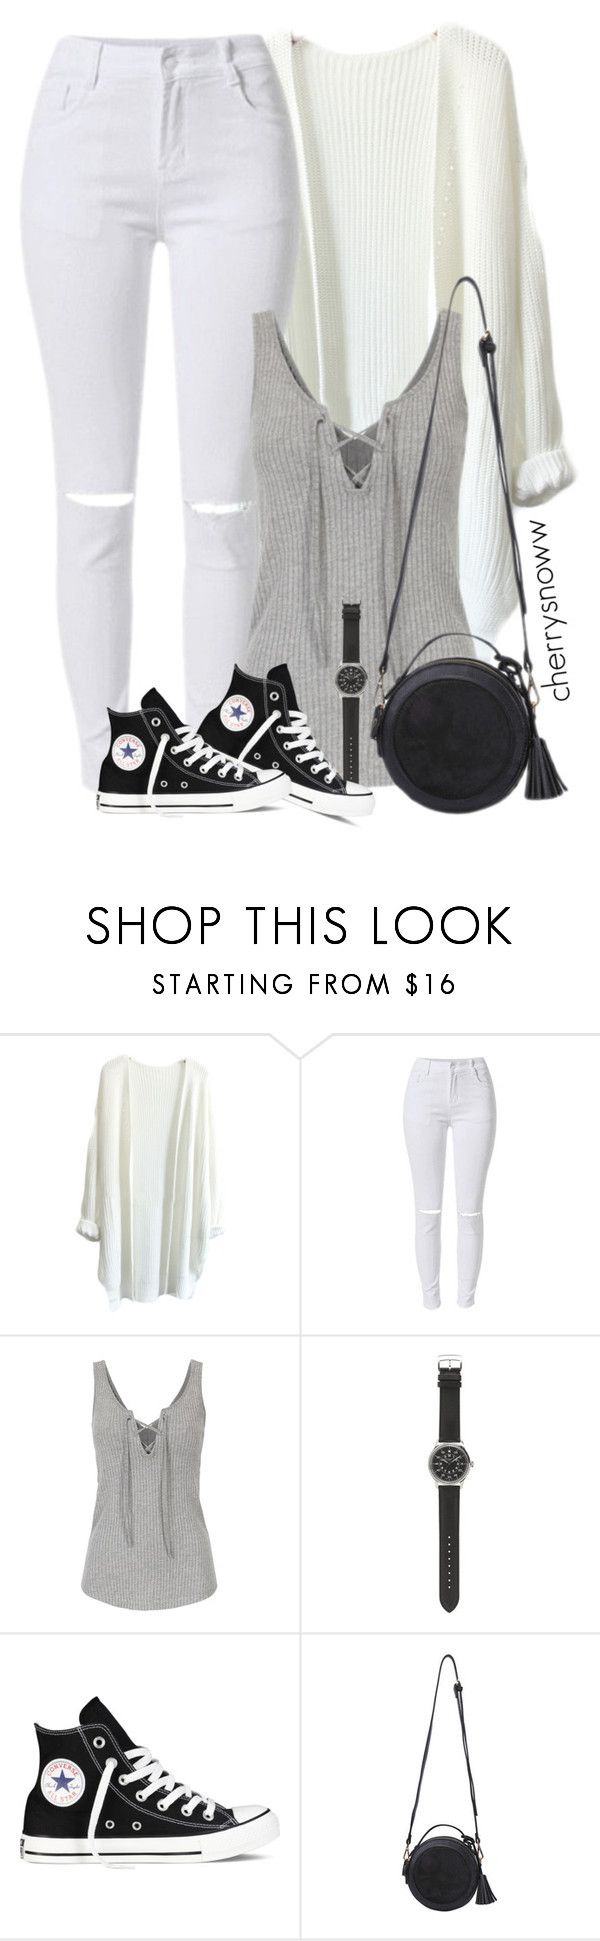 """""""Monochrome casual spring outfit"""" by cherrysnoww ❤ liked on Polyvore featuring J.Crew and Converse"""